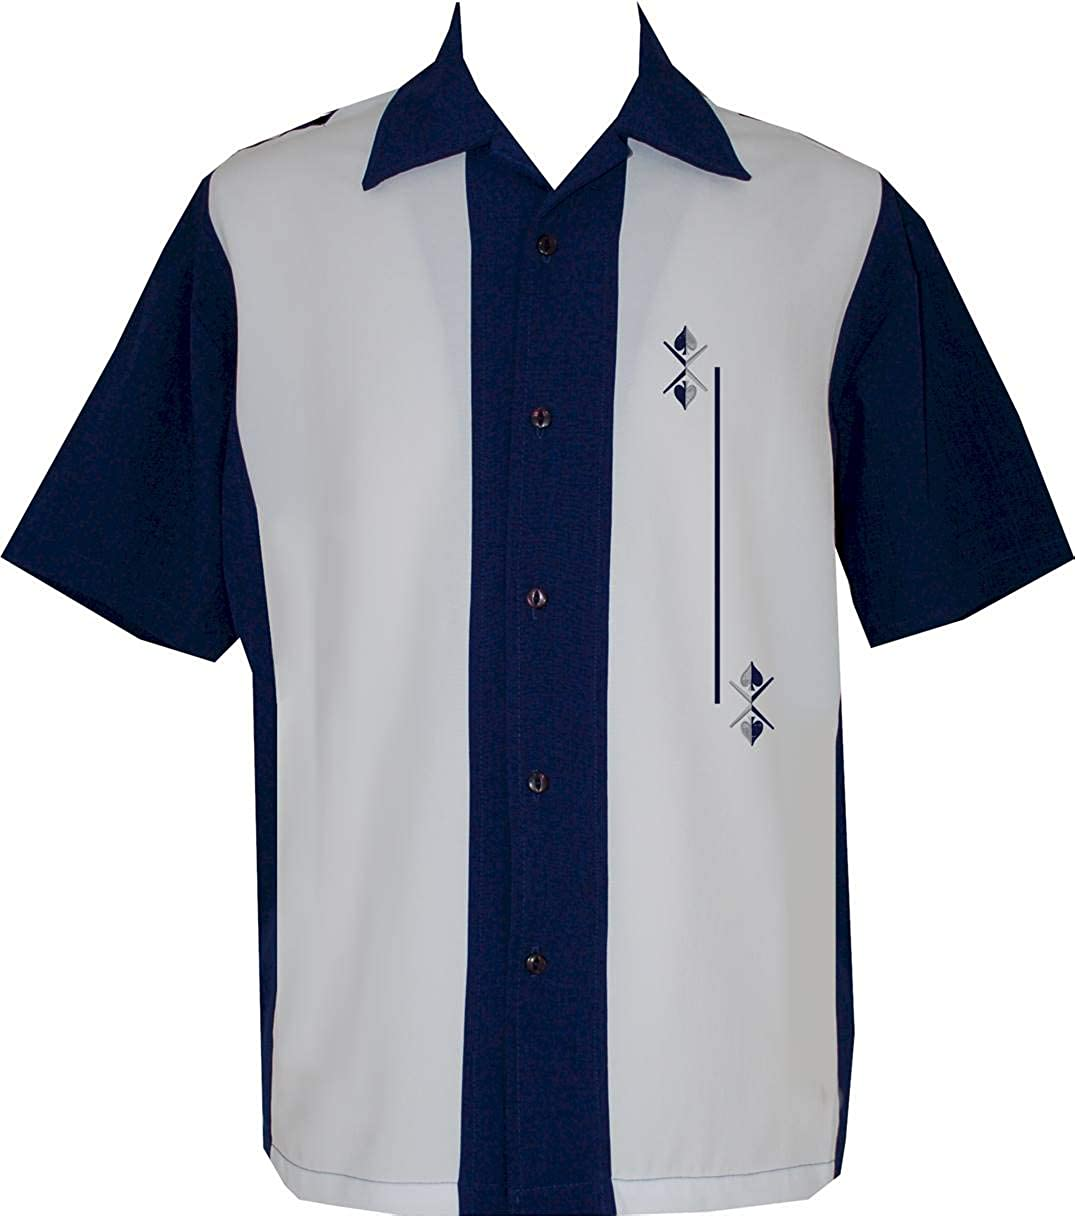 Mens Vintage Shirts – Casual, Dress, T-shirts, Polos Lucky Paradise Mens Camp Shirt Vintage Cuban Style Bowling Shirt Retro Blue Ice $68.95 AT vintagedancer.com